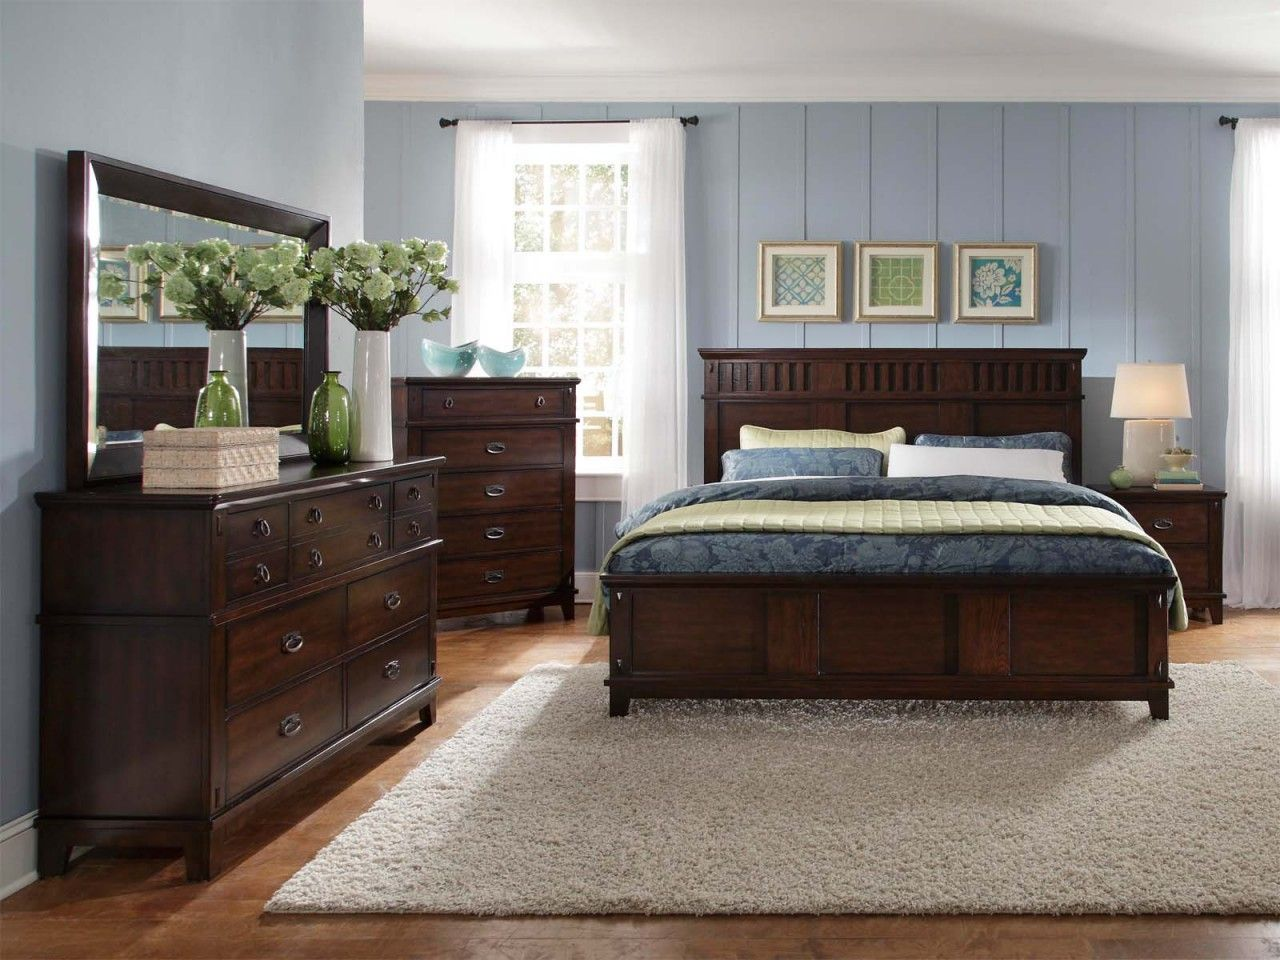 Bedroom With Dark Furniture Google Search Brown Furniture